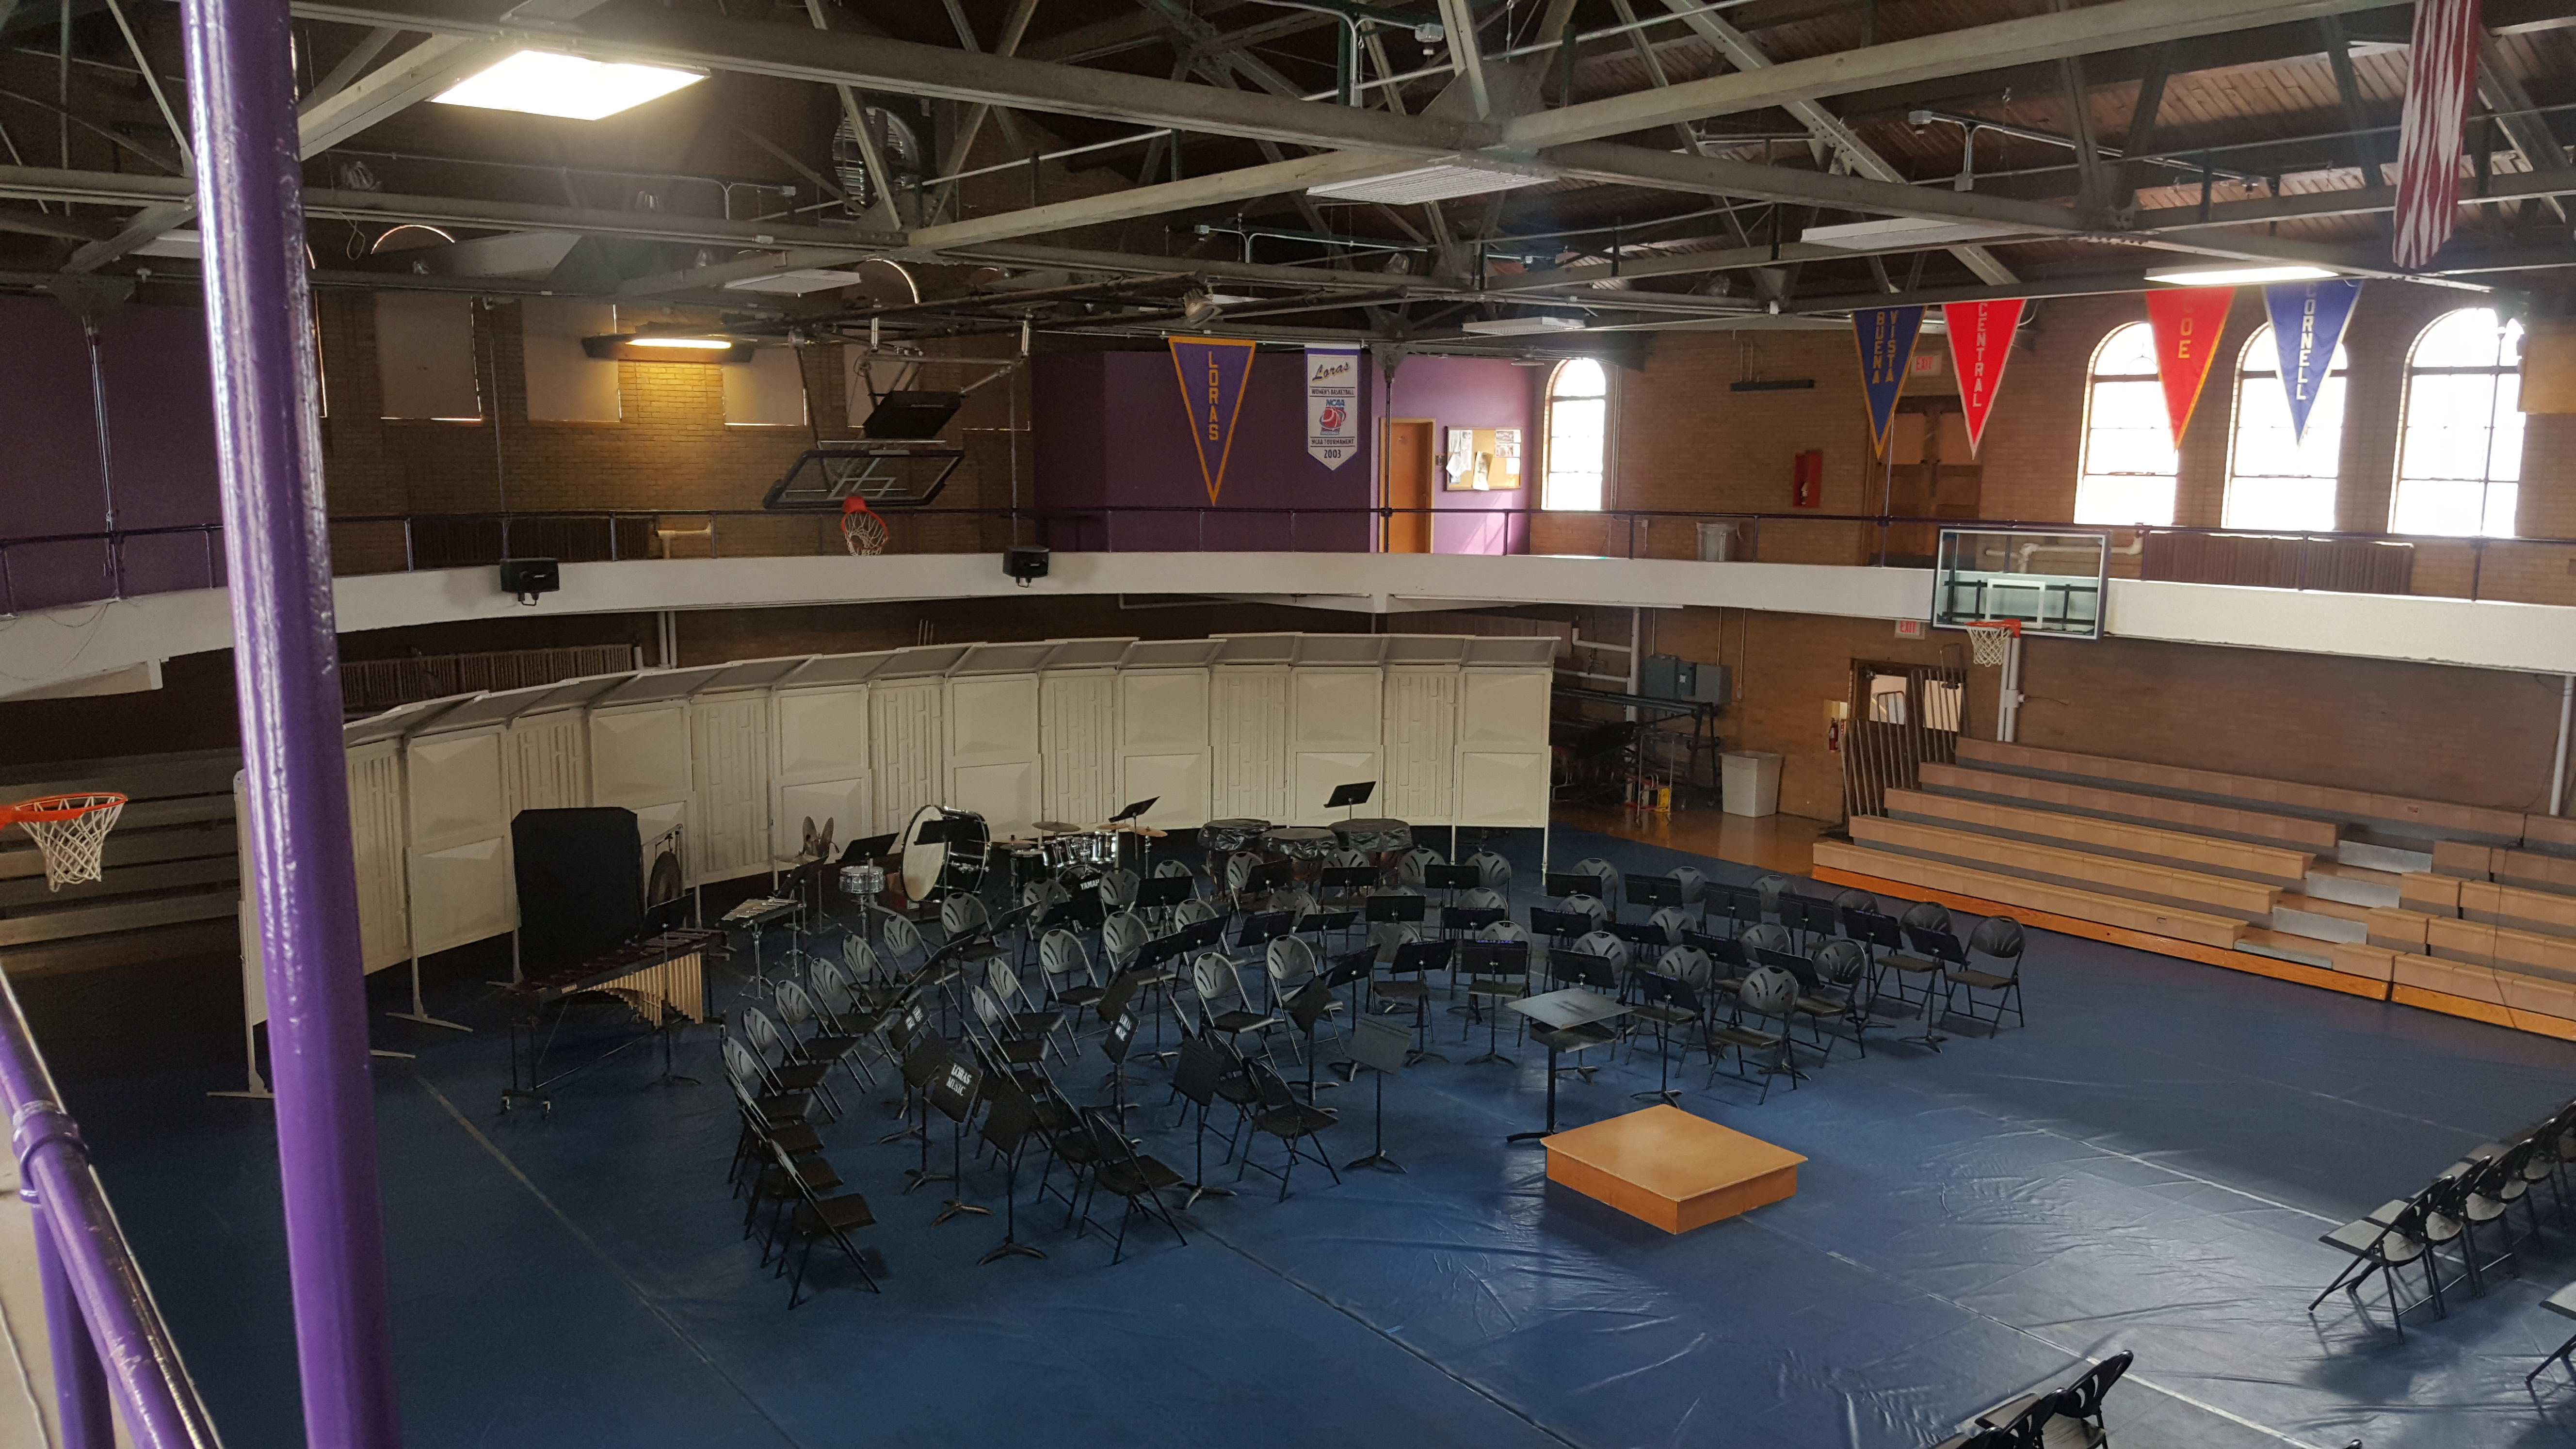 Old gym series: loras fieldhouse